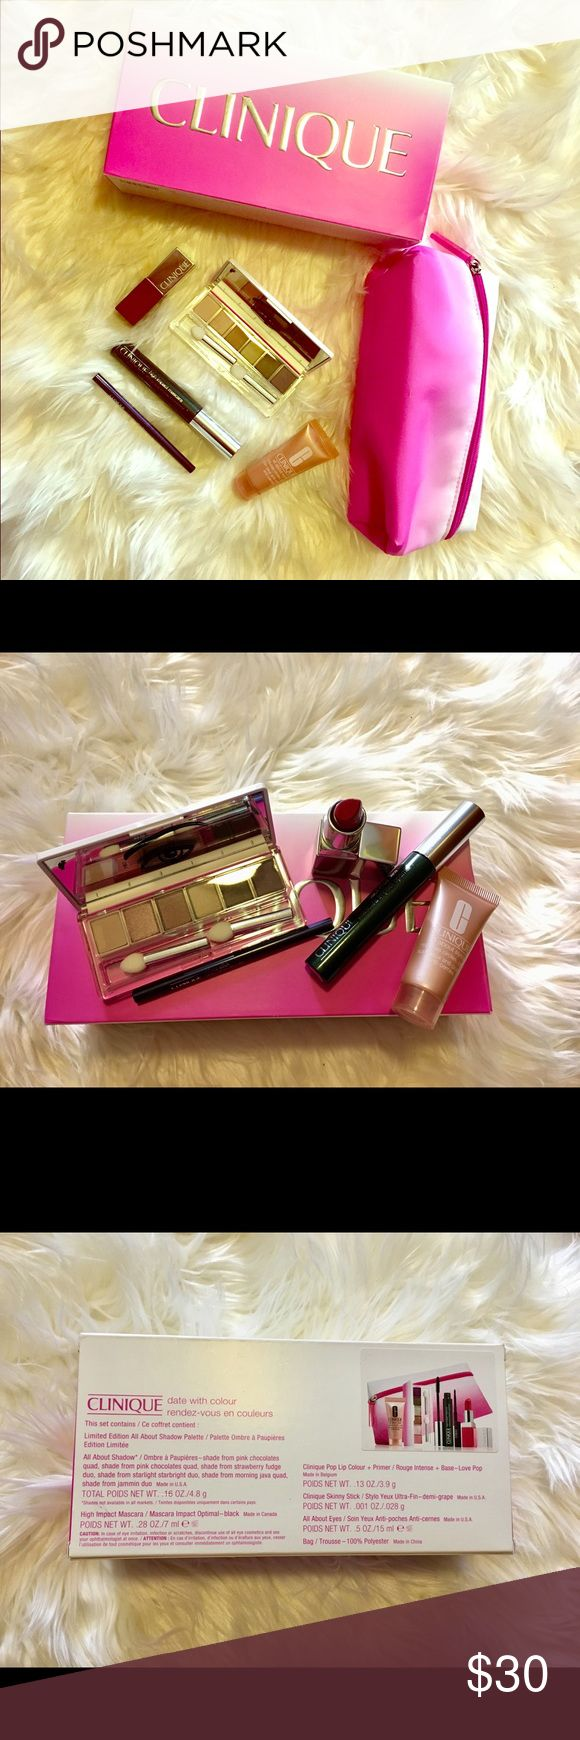 Clinique Gift Set New Clinique Date with Colour Gift set. Includes: Limited Edition All About Shadow Palette, High Impact Mascara - Black, Pop Lip Colour in Love Pop + Primer, Skinny Stick in Grape, and the beautiful Pink makeup bag. Clinique Makeup